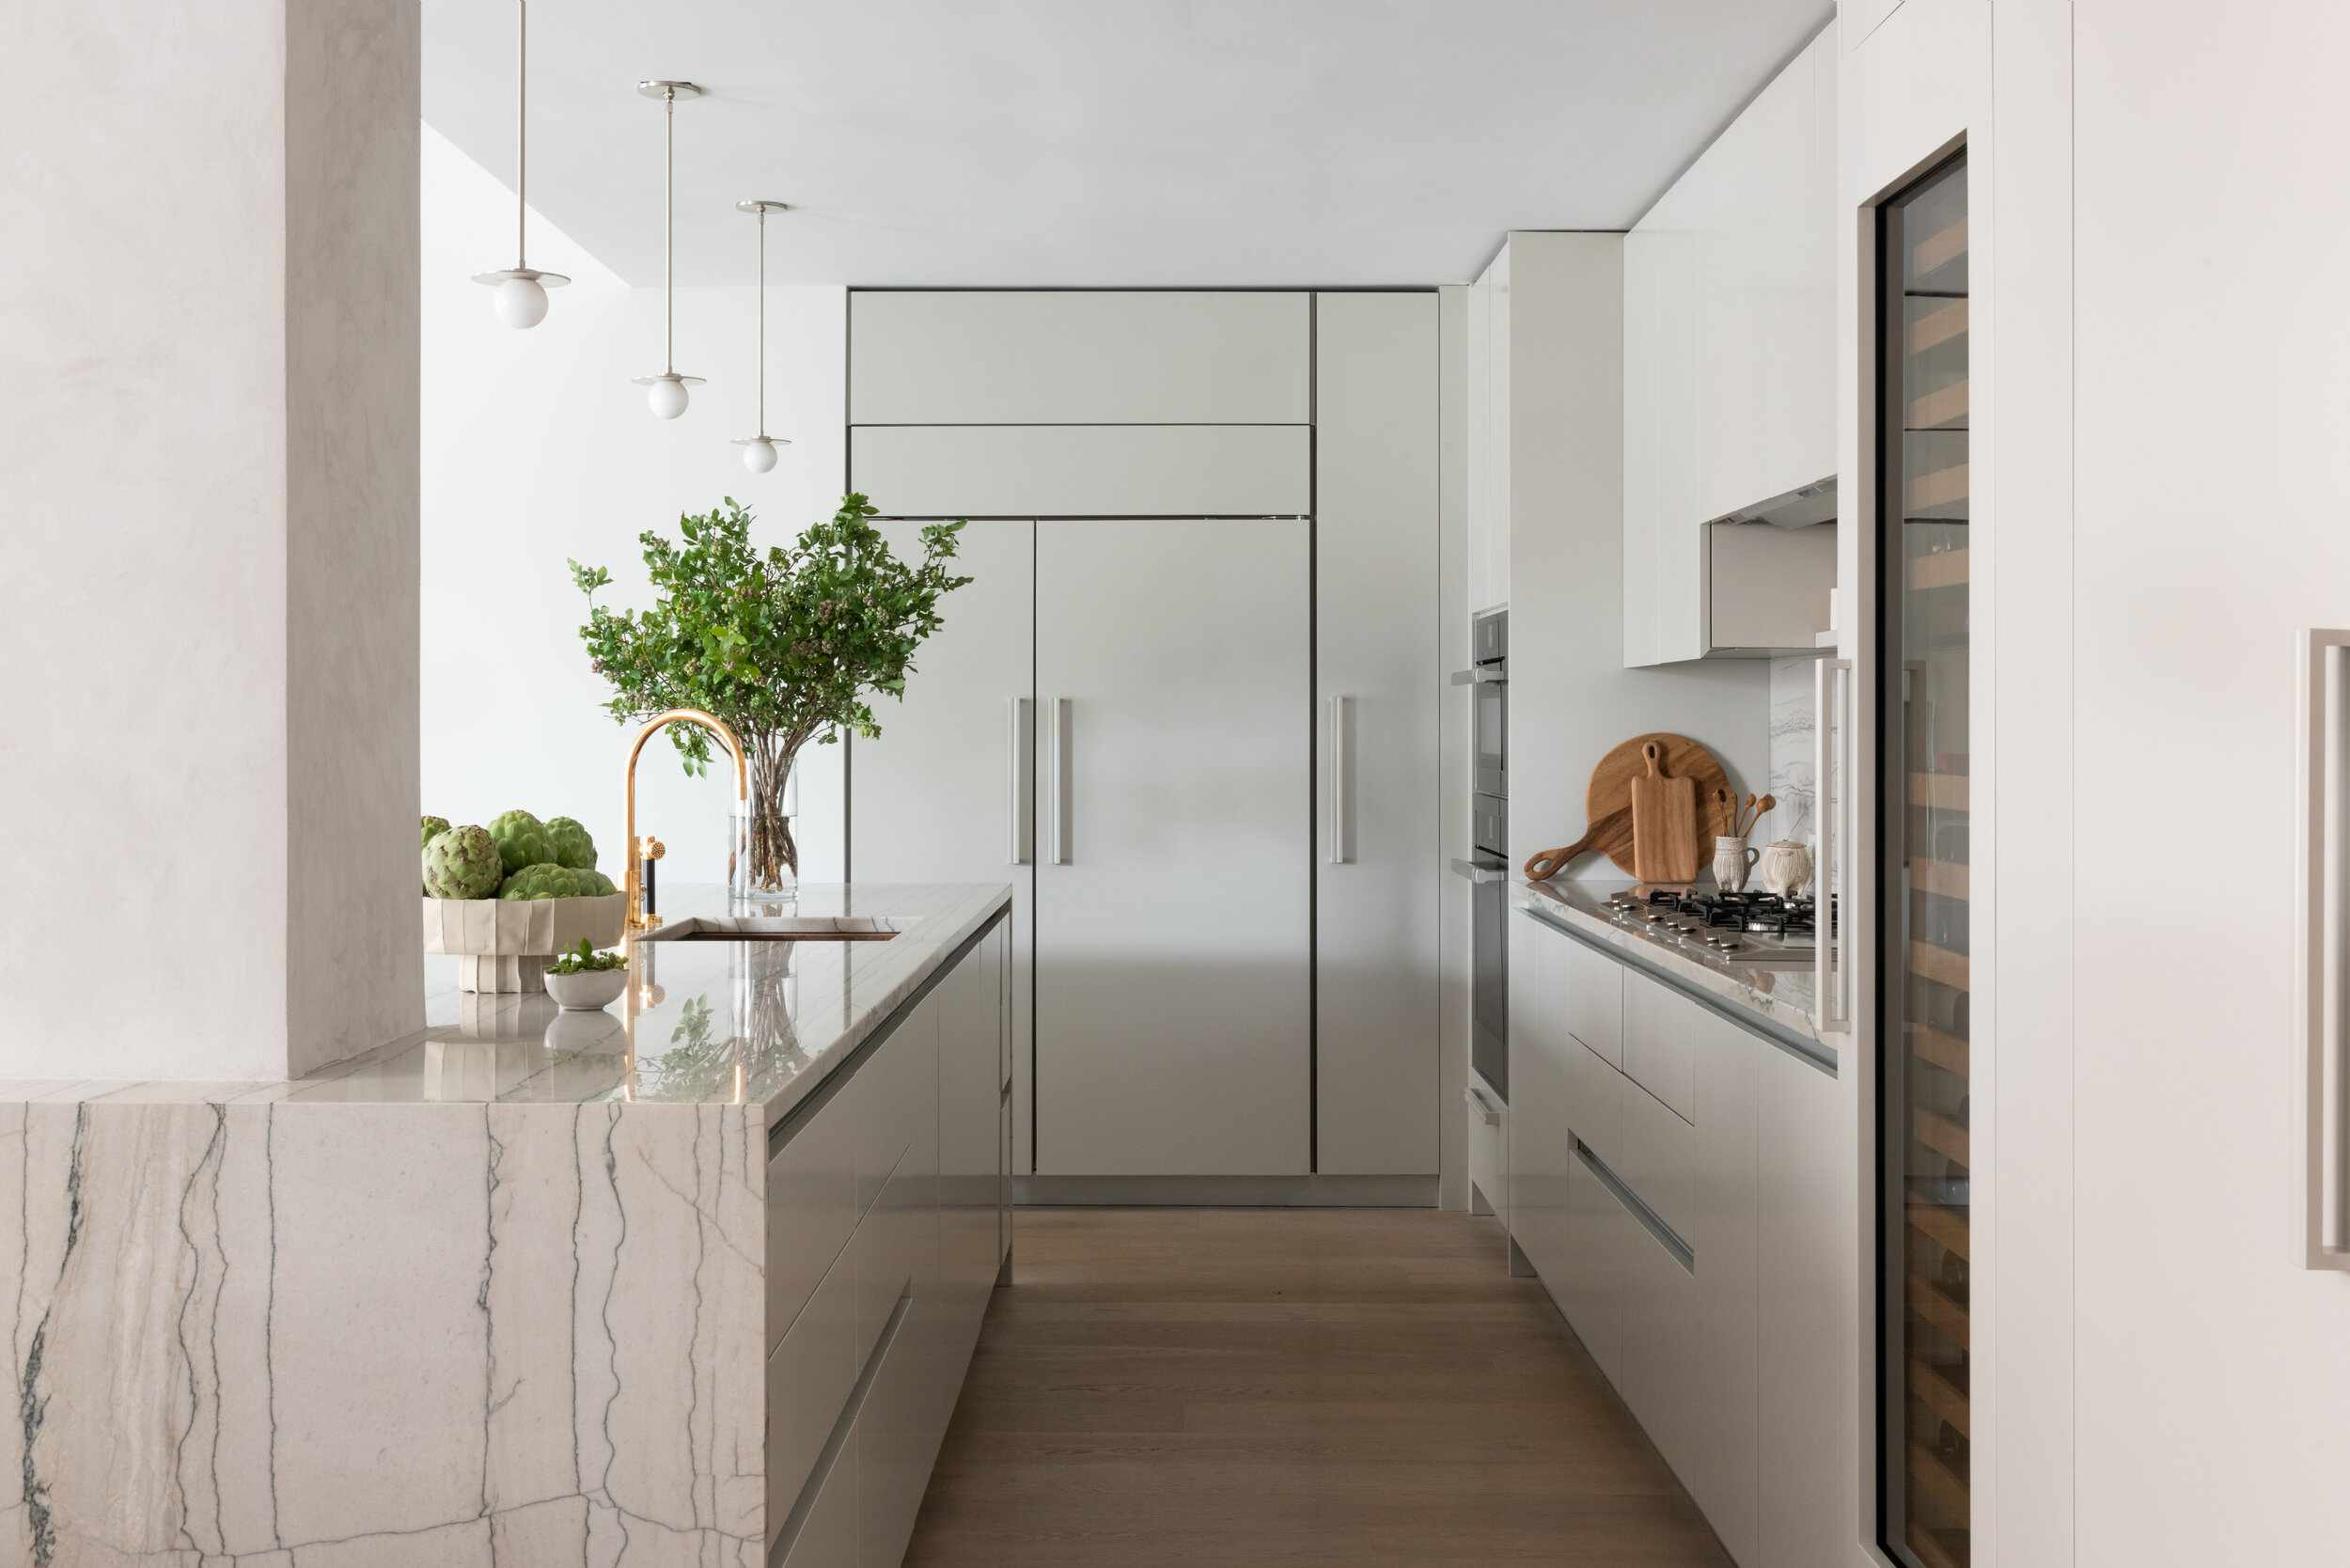 A kitchen with light gray cabinets and marble countertops